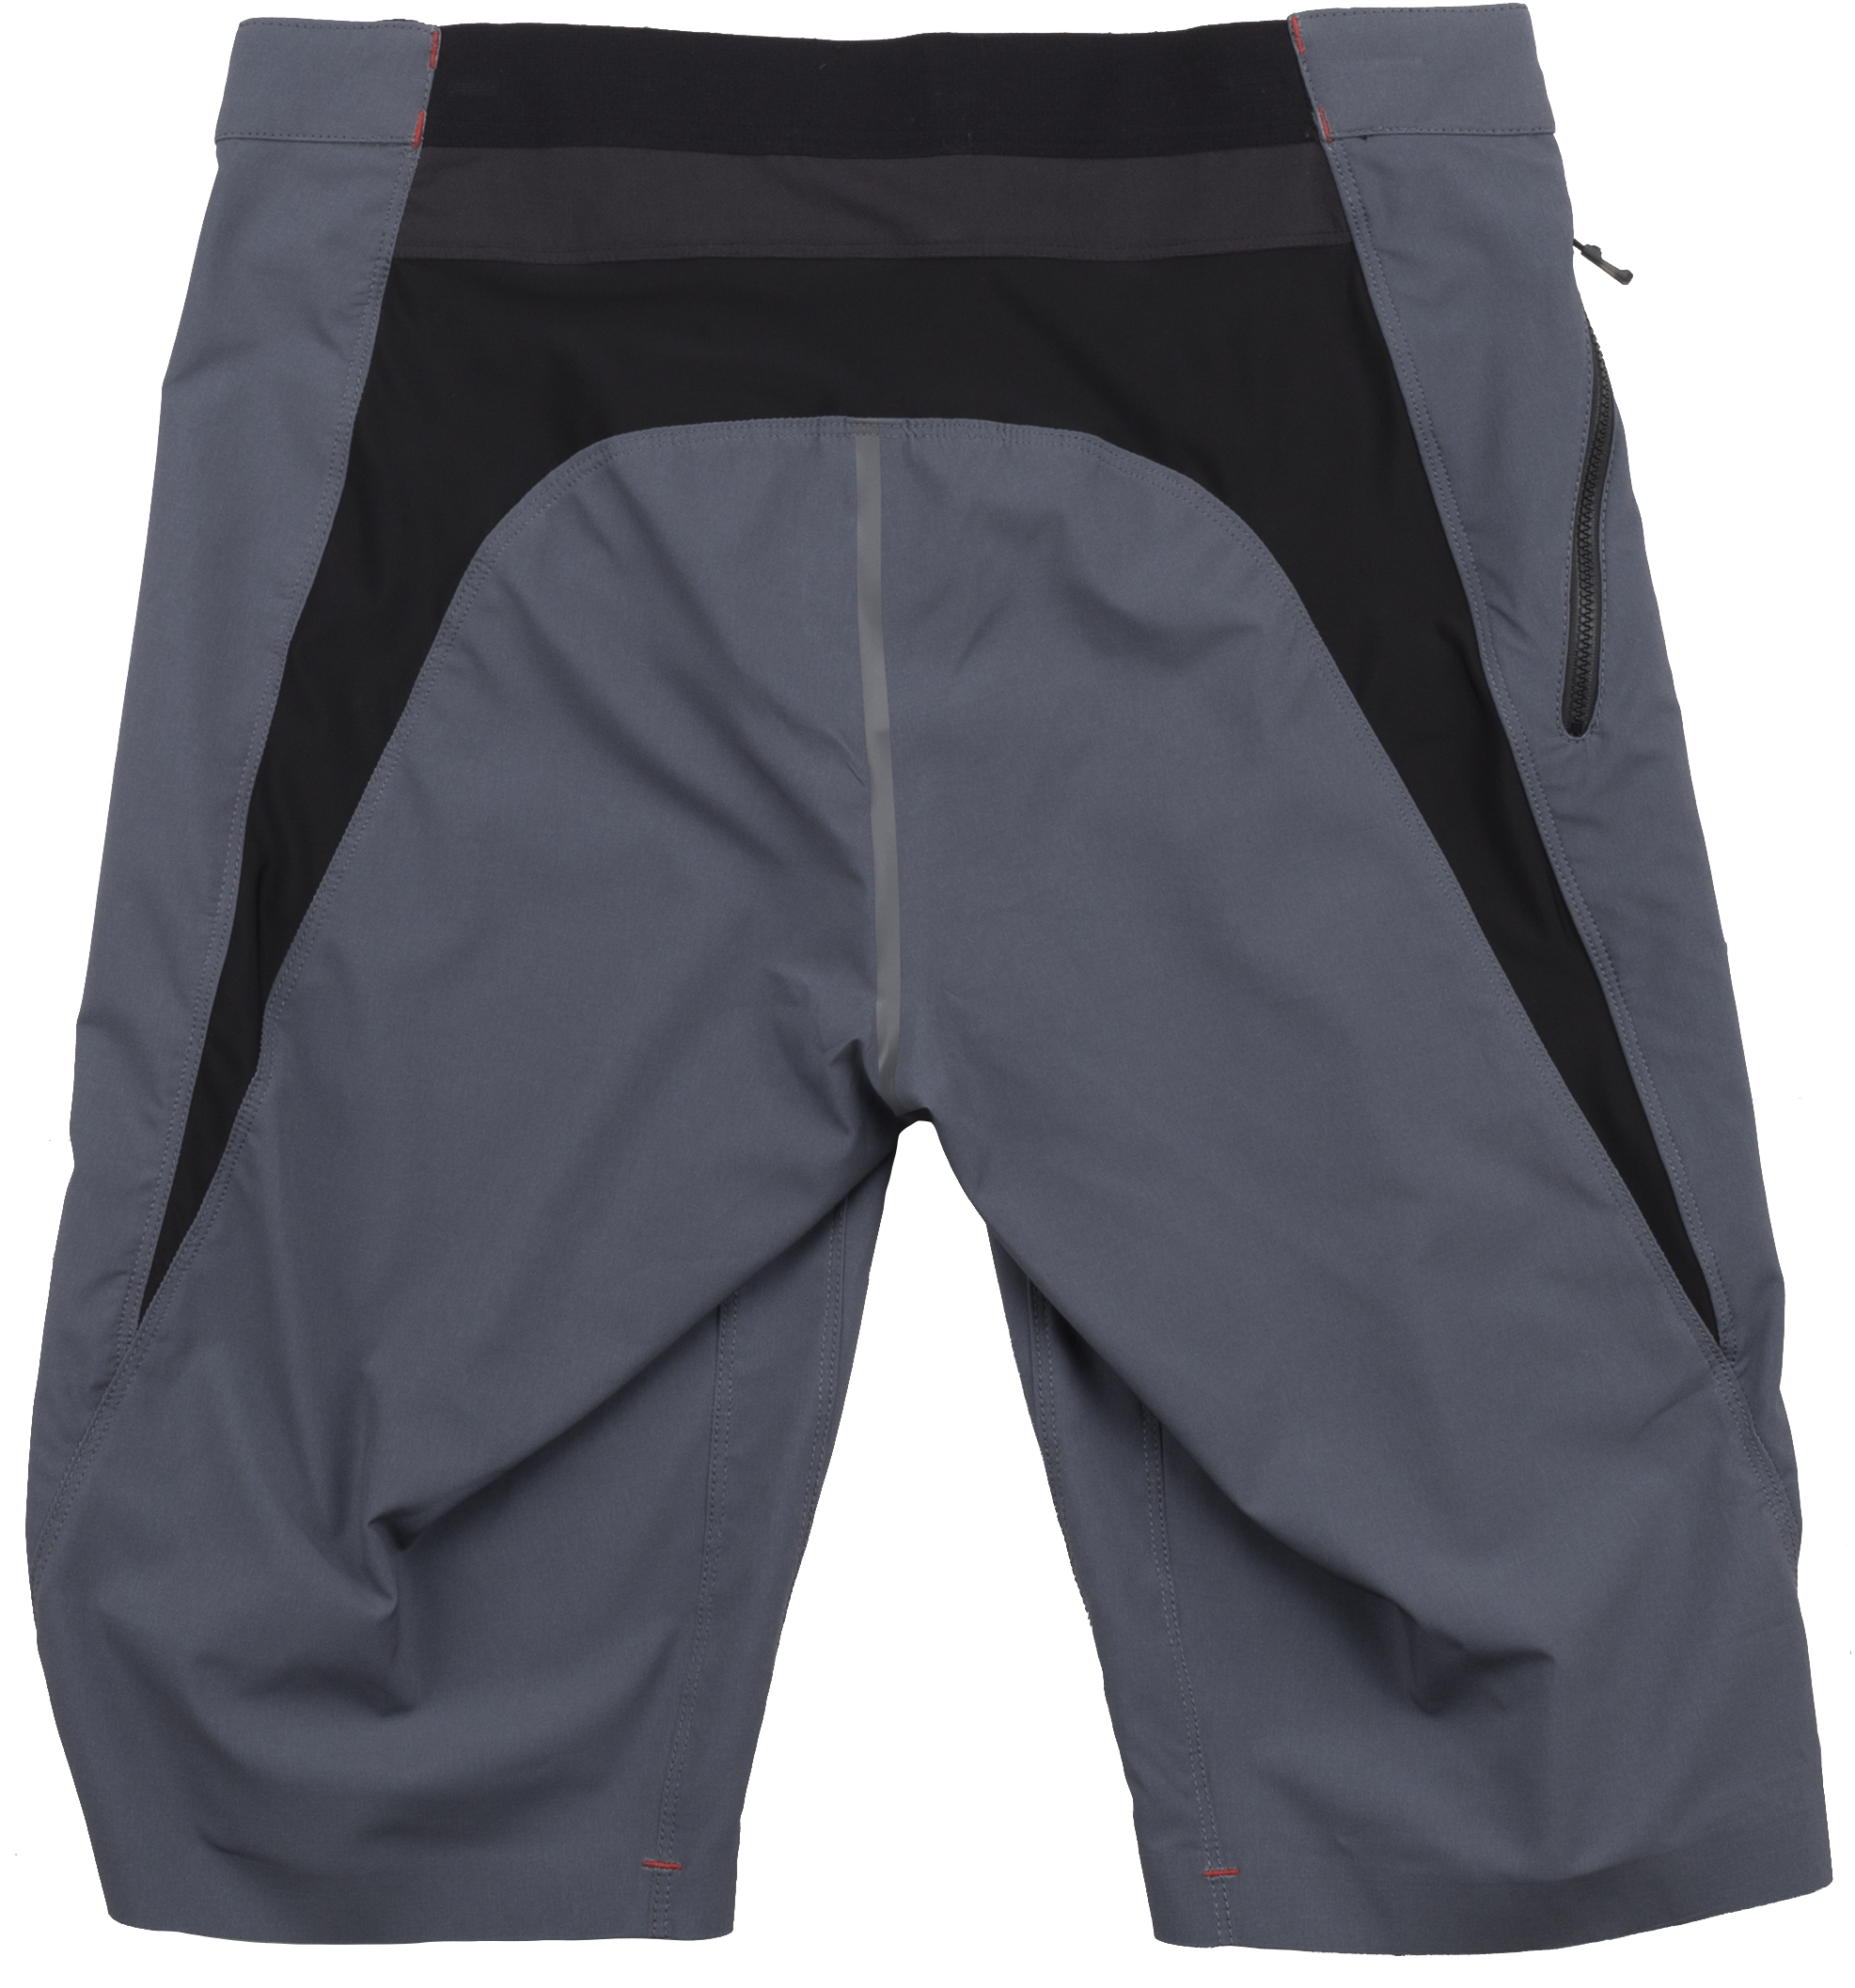 Troy Lee Designs 2019 Ace 2.0 Shorts Charcoal All Adult Sizes